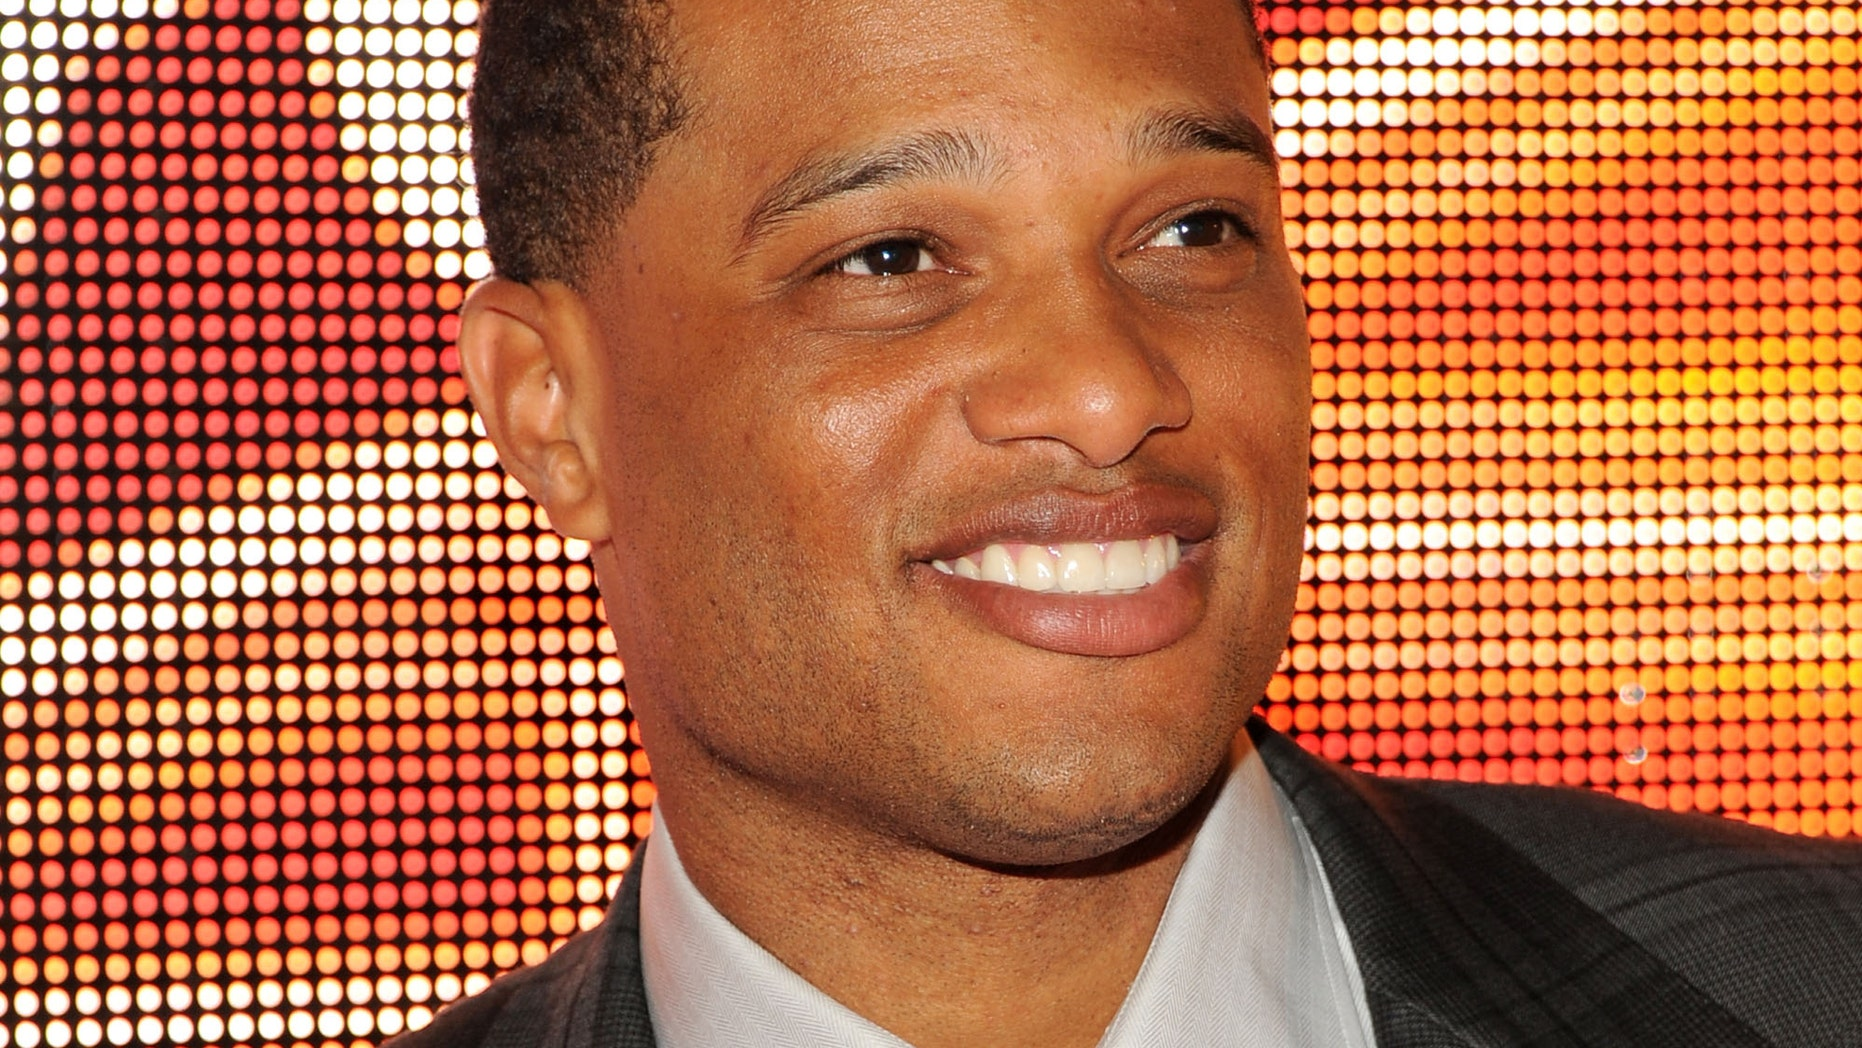 NEW YORK, NY - JUNE 17:  Baseball player Robinson Cano attends The 40/40 Club 10 Year Anniversary Party at 40 / 40 Club on June 17, 2013 in New York City.  (Photo by Ben Gabbe/Getty Images)